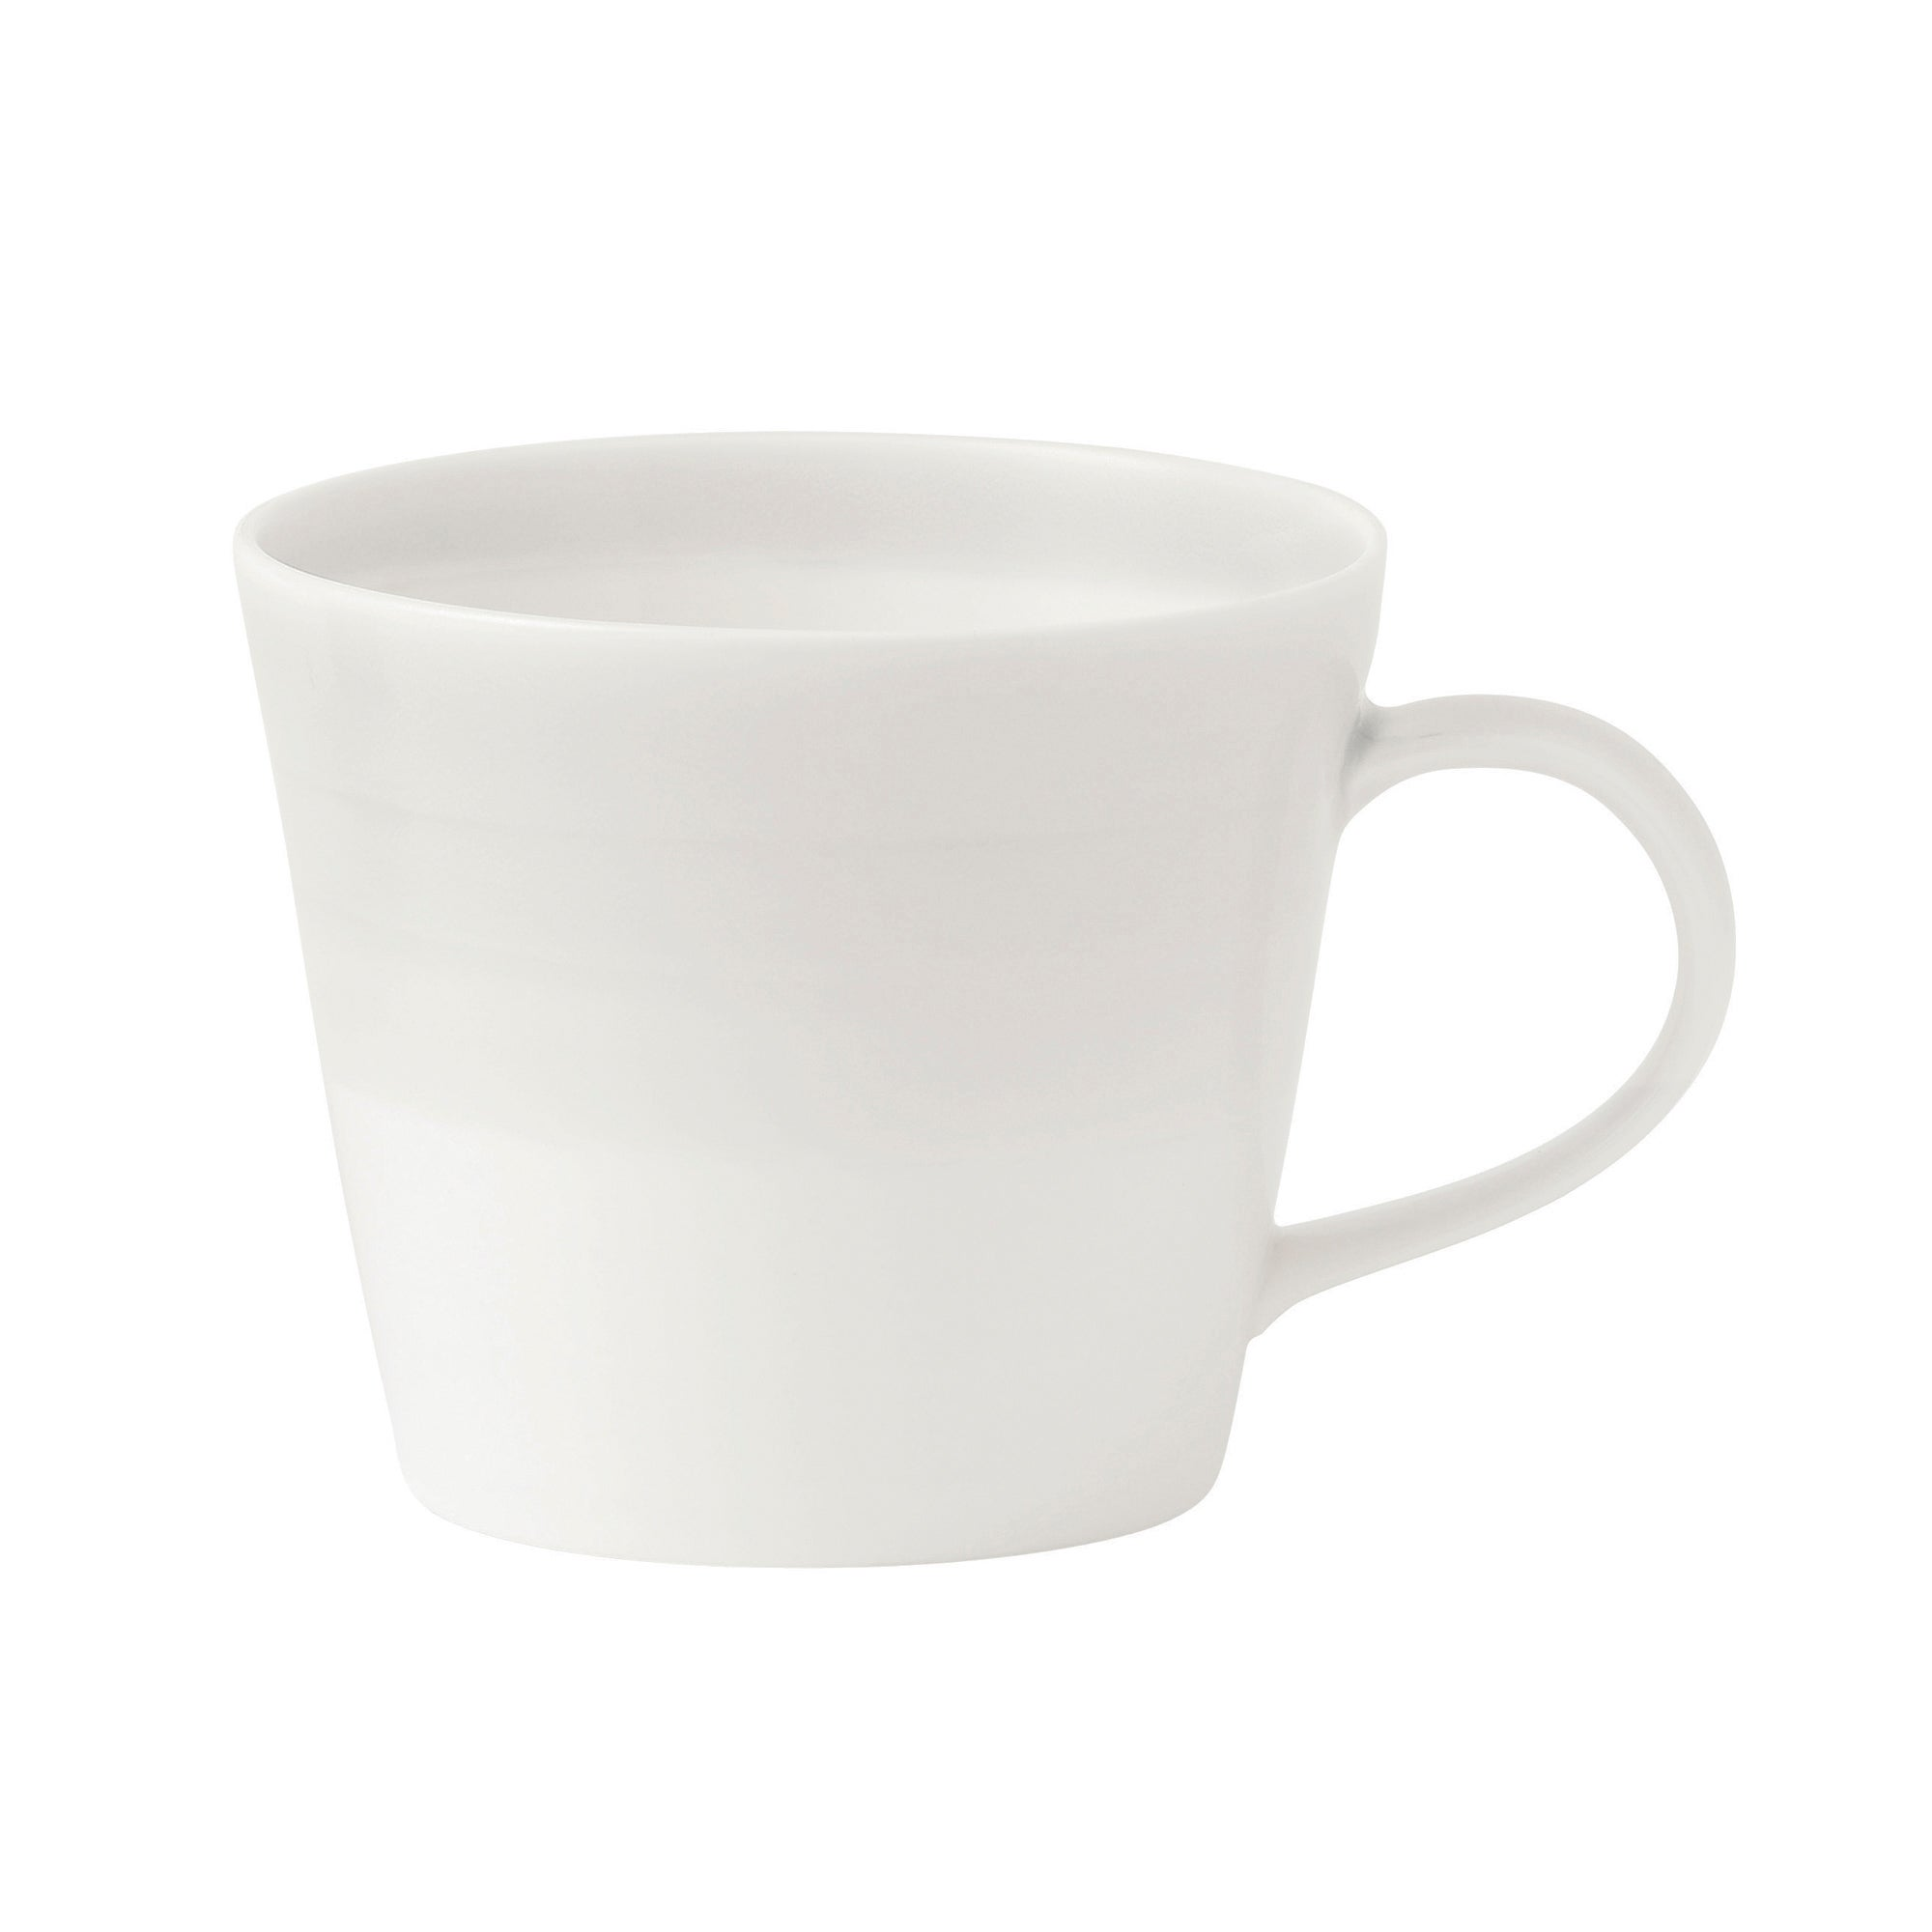 Royal Doulton White 1815 Collection Mug